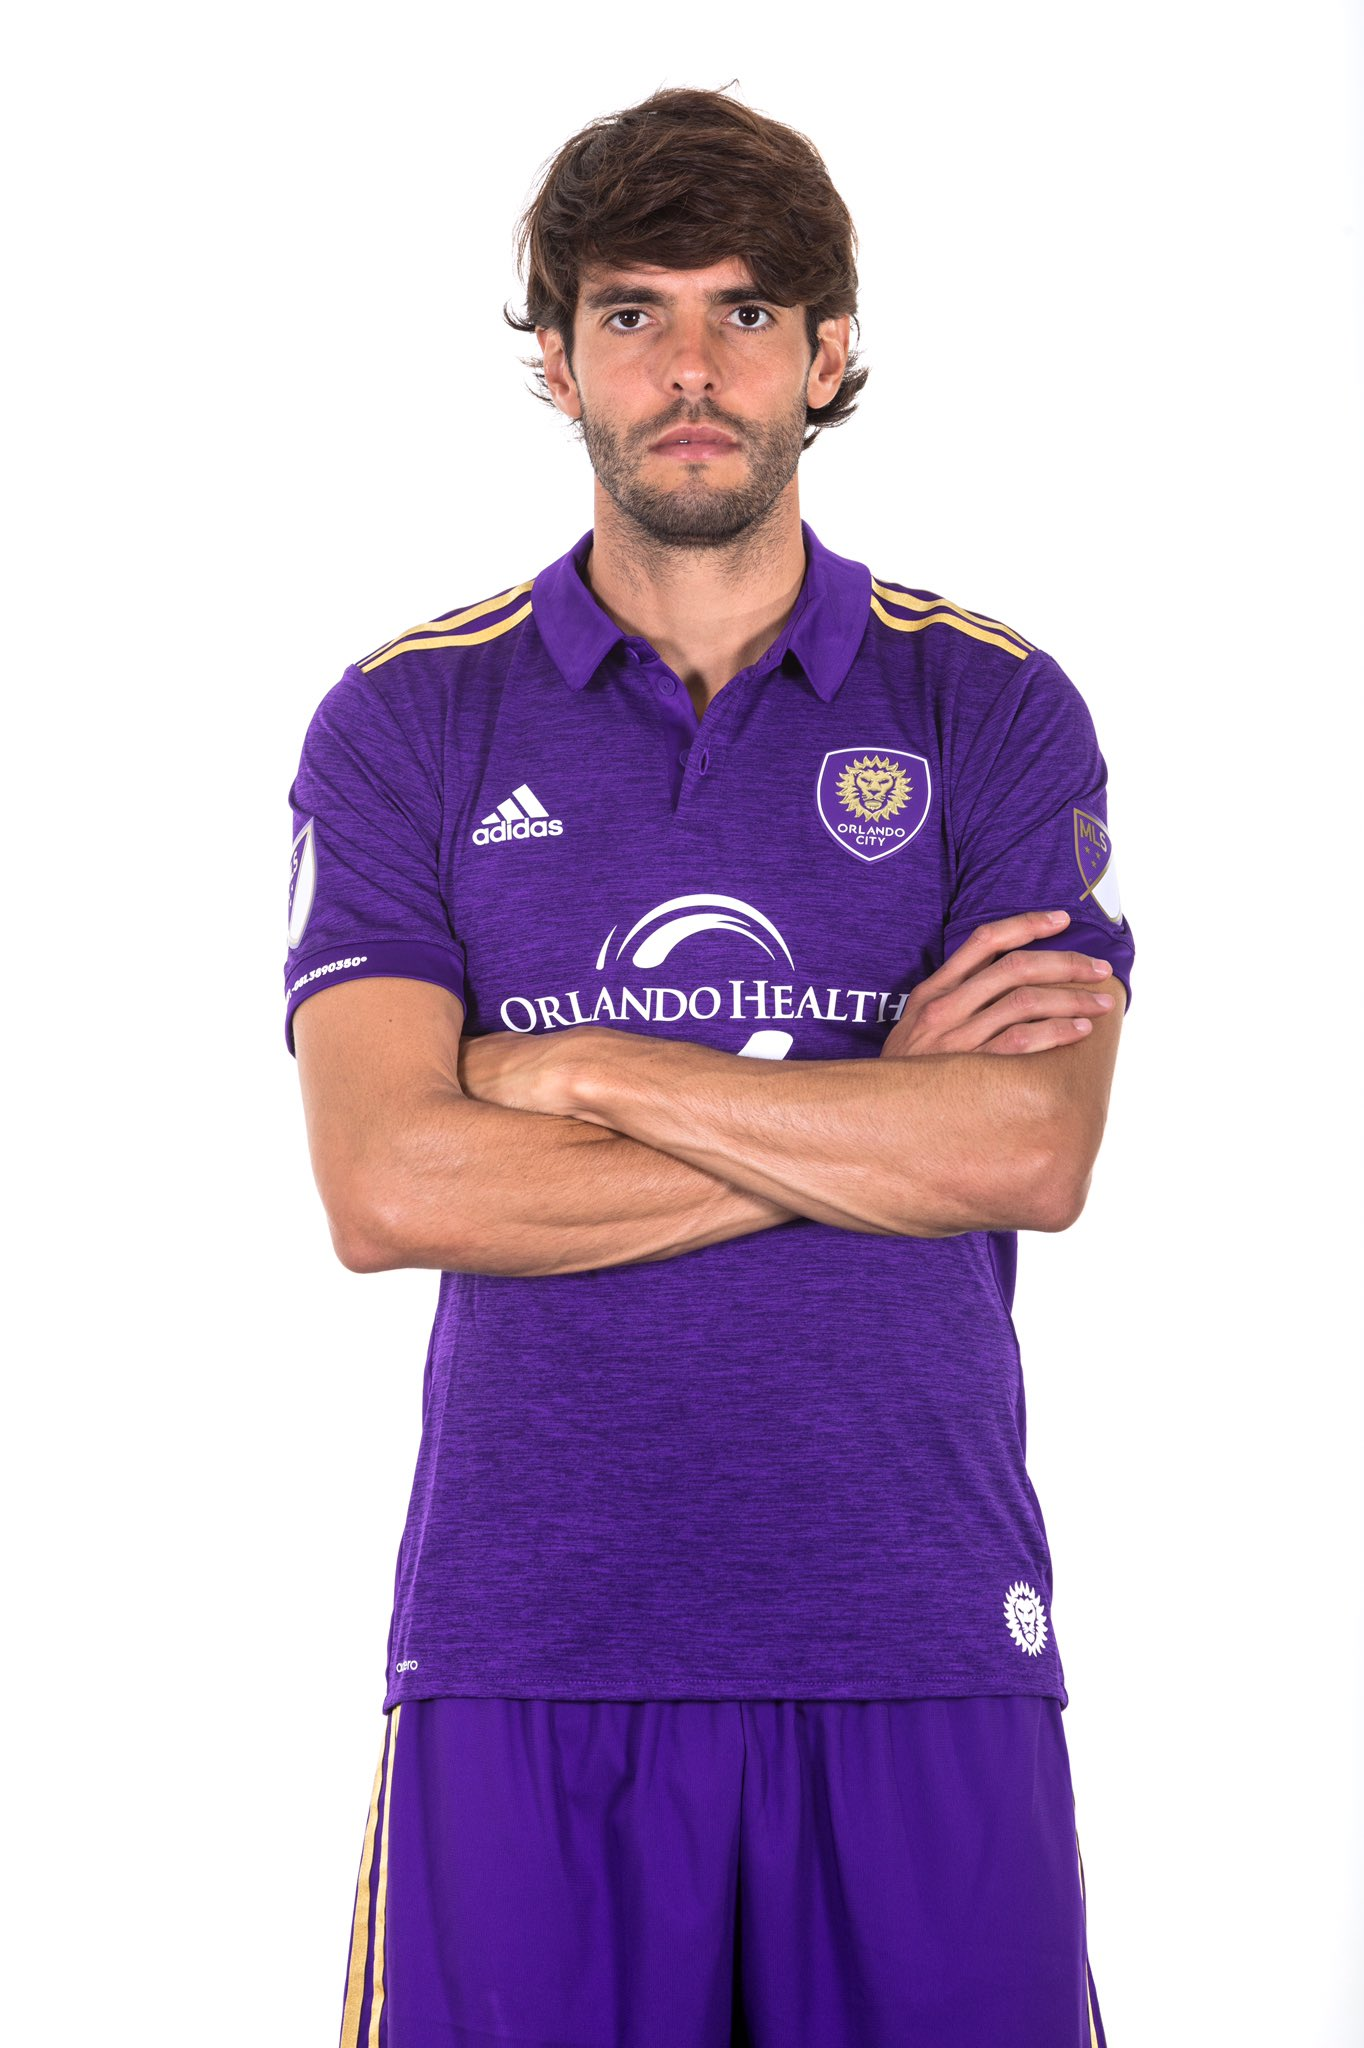 The new home kit! �� @OrlandoCitySC https://t.co/3Y39DRDhLv